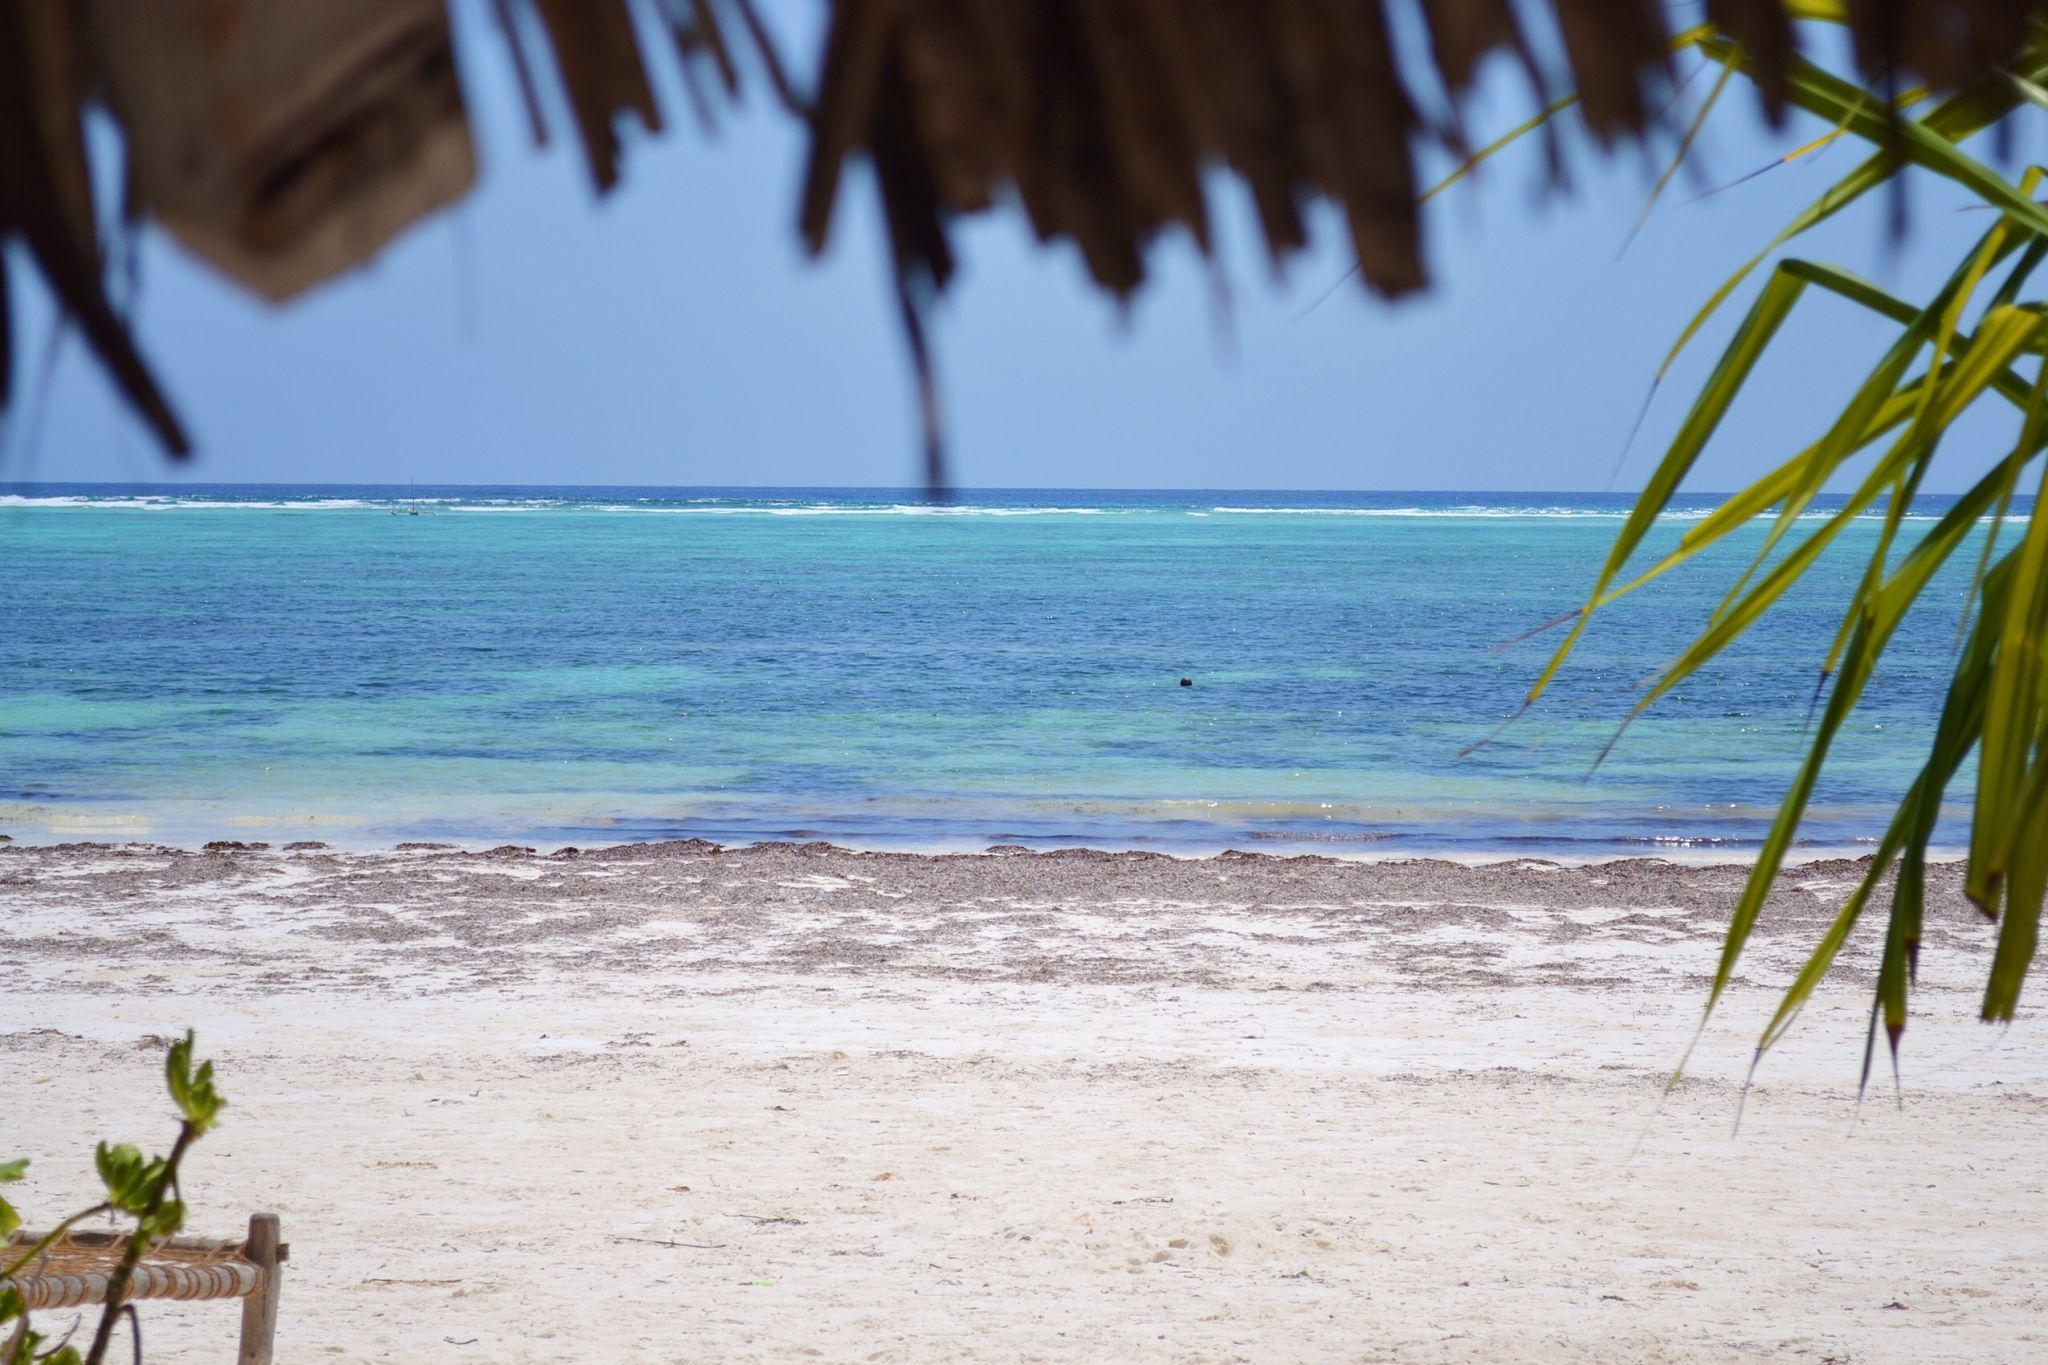 Image of the sea from Matemwe beach in Zanzibar